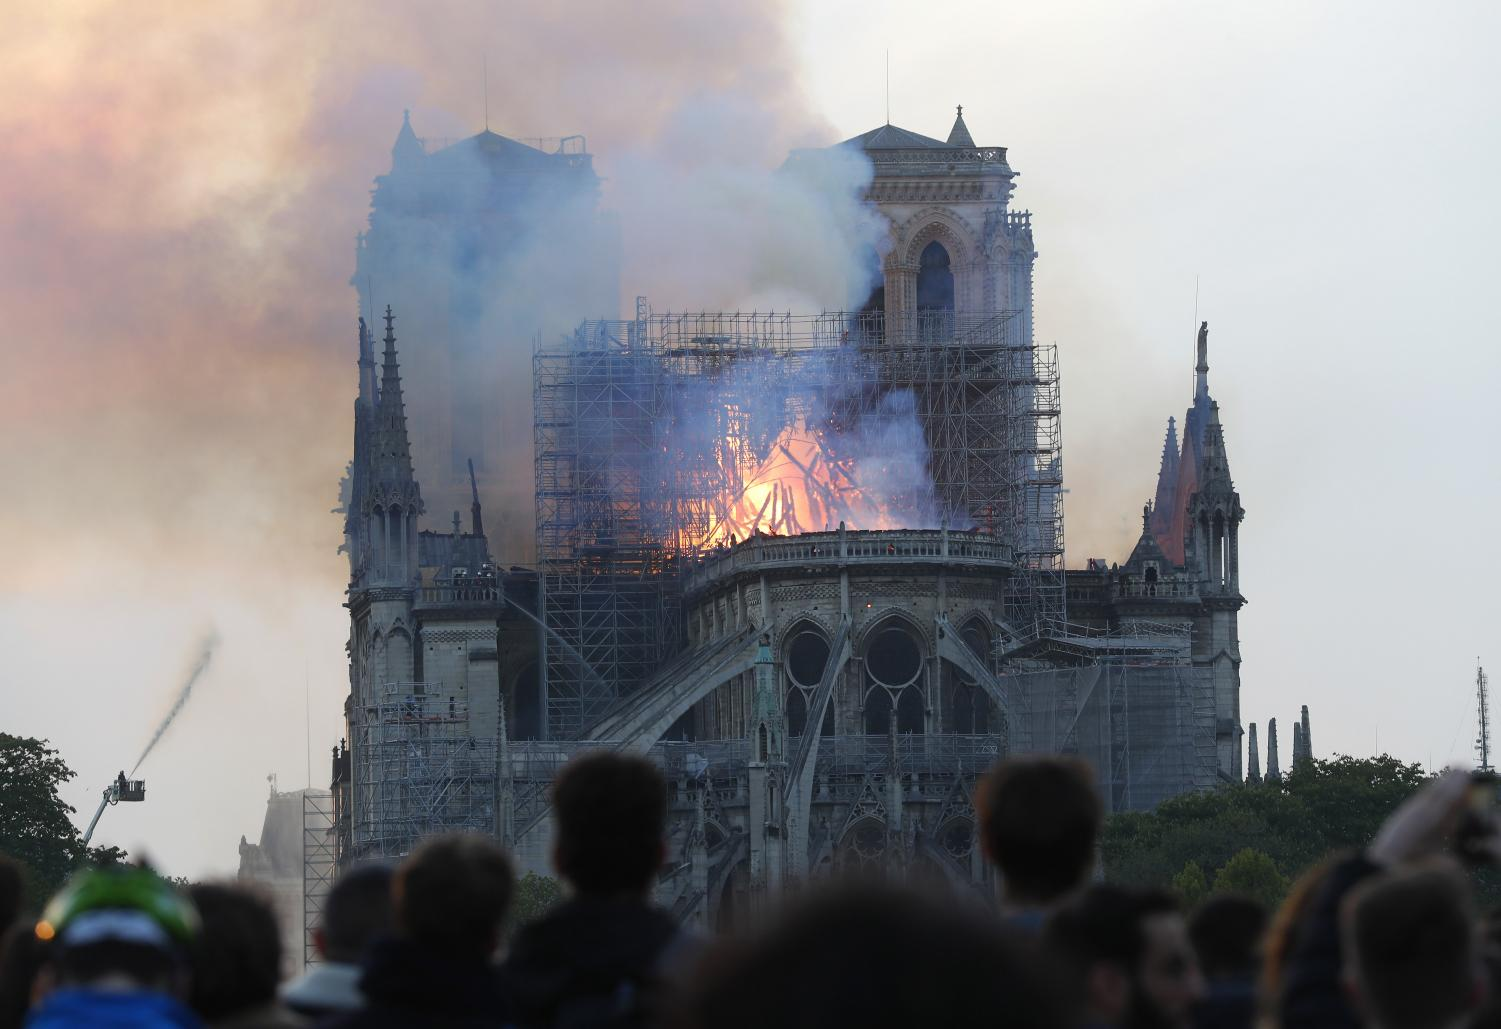 Flames rise from Notre Dame cathedral as it burns in Paris, Monday, April 15, 2019. Massive plumes of yellow brown smoke is filling the air above Notre Dame Cathedral and ash is falling on tourists and others around the island that marks the center of Paris.